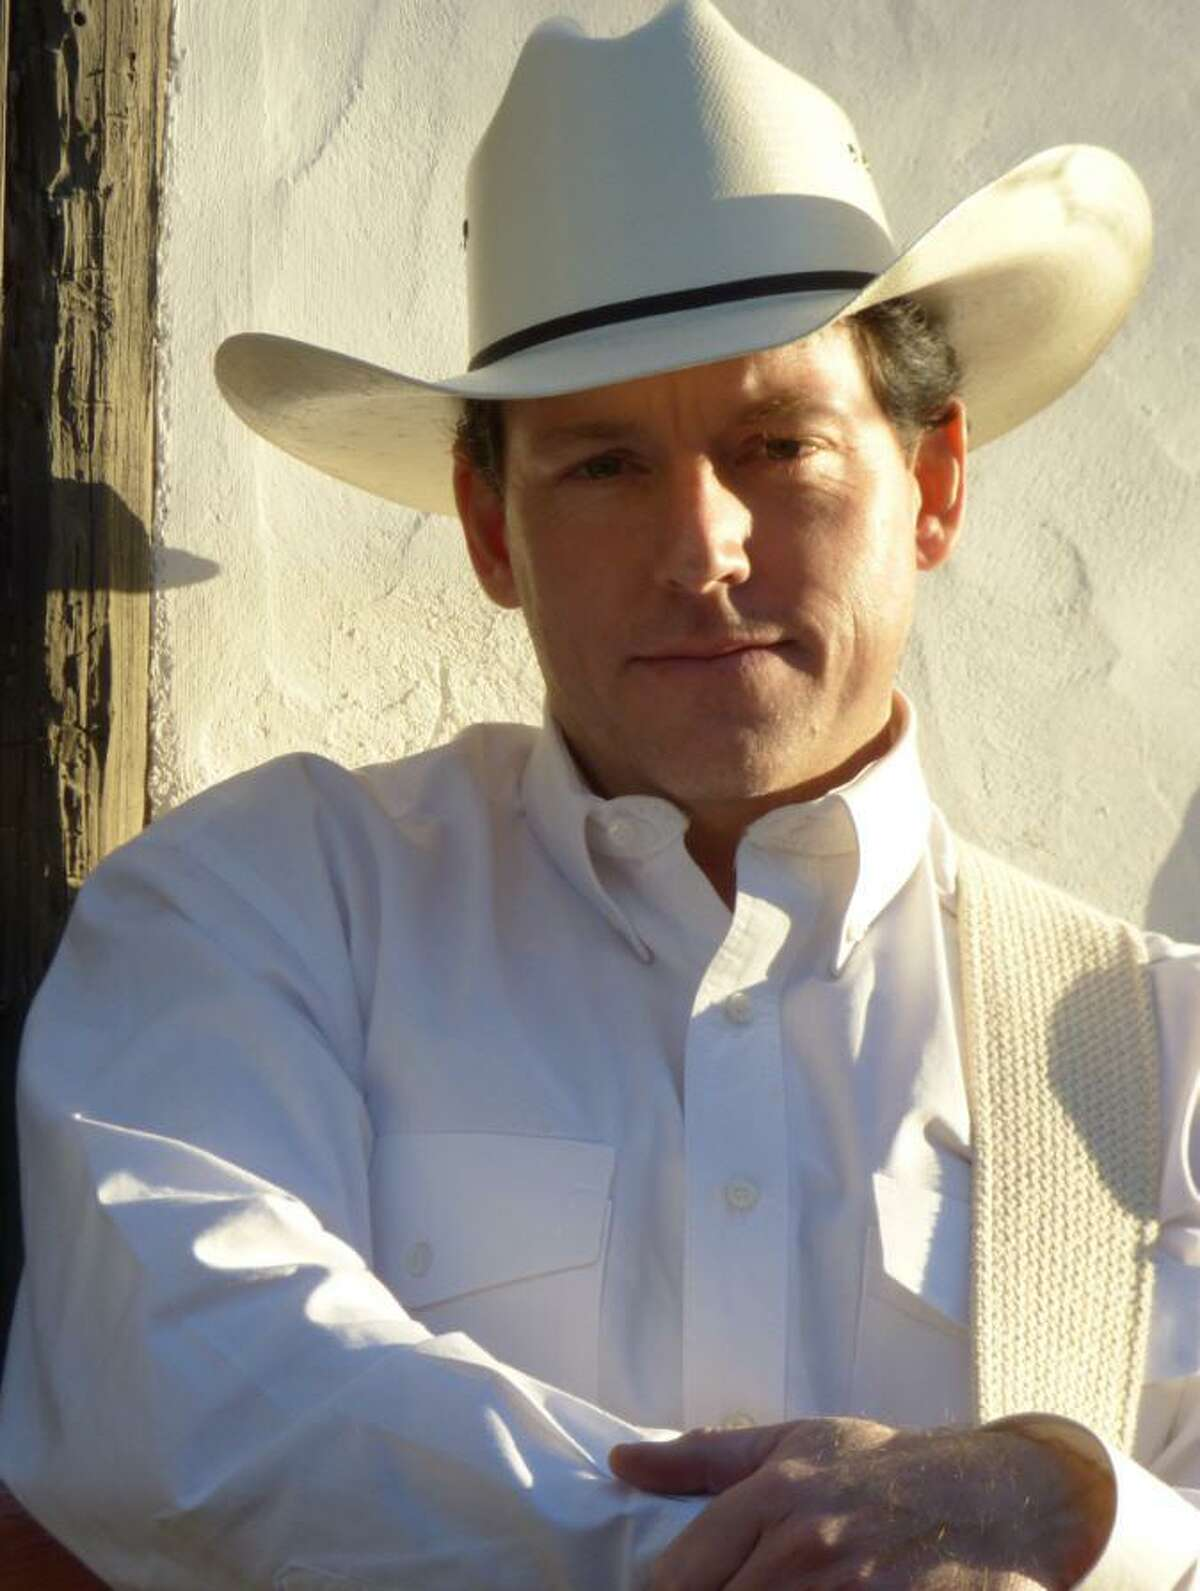 The First Thursday Concert and Market Days is this coming Thursday, July 1, with a Tribute to George Strait by Derek Spence. Come early to get your place on the lawn, shop the Market Days from 5-8 p.m., and hear the pre-concert tunes of the Jazz Connection on the lawn by the pavilion.